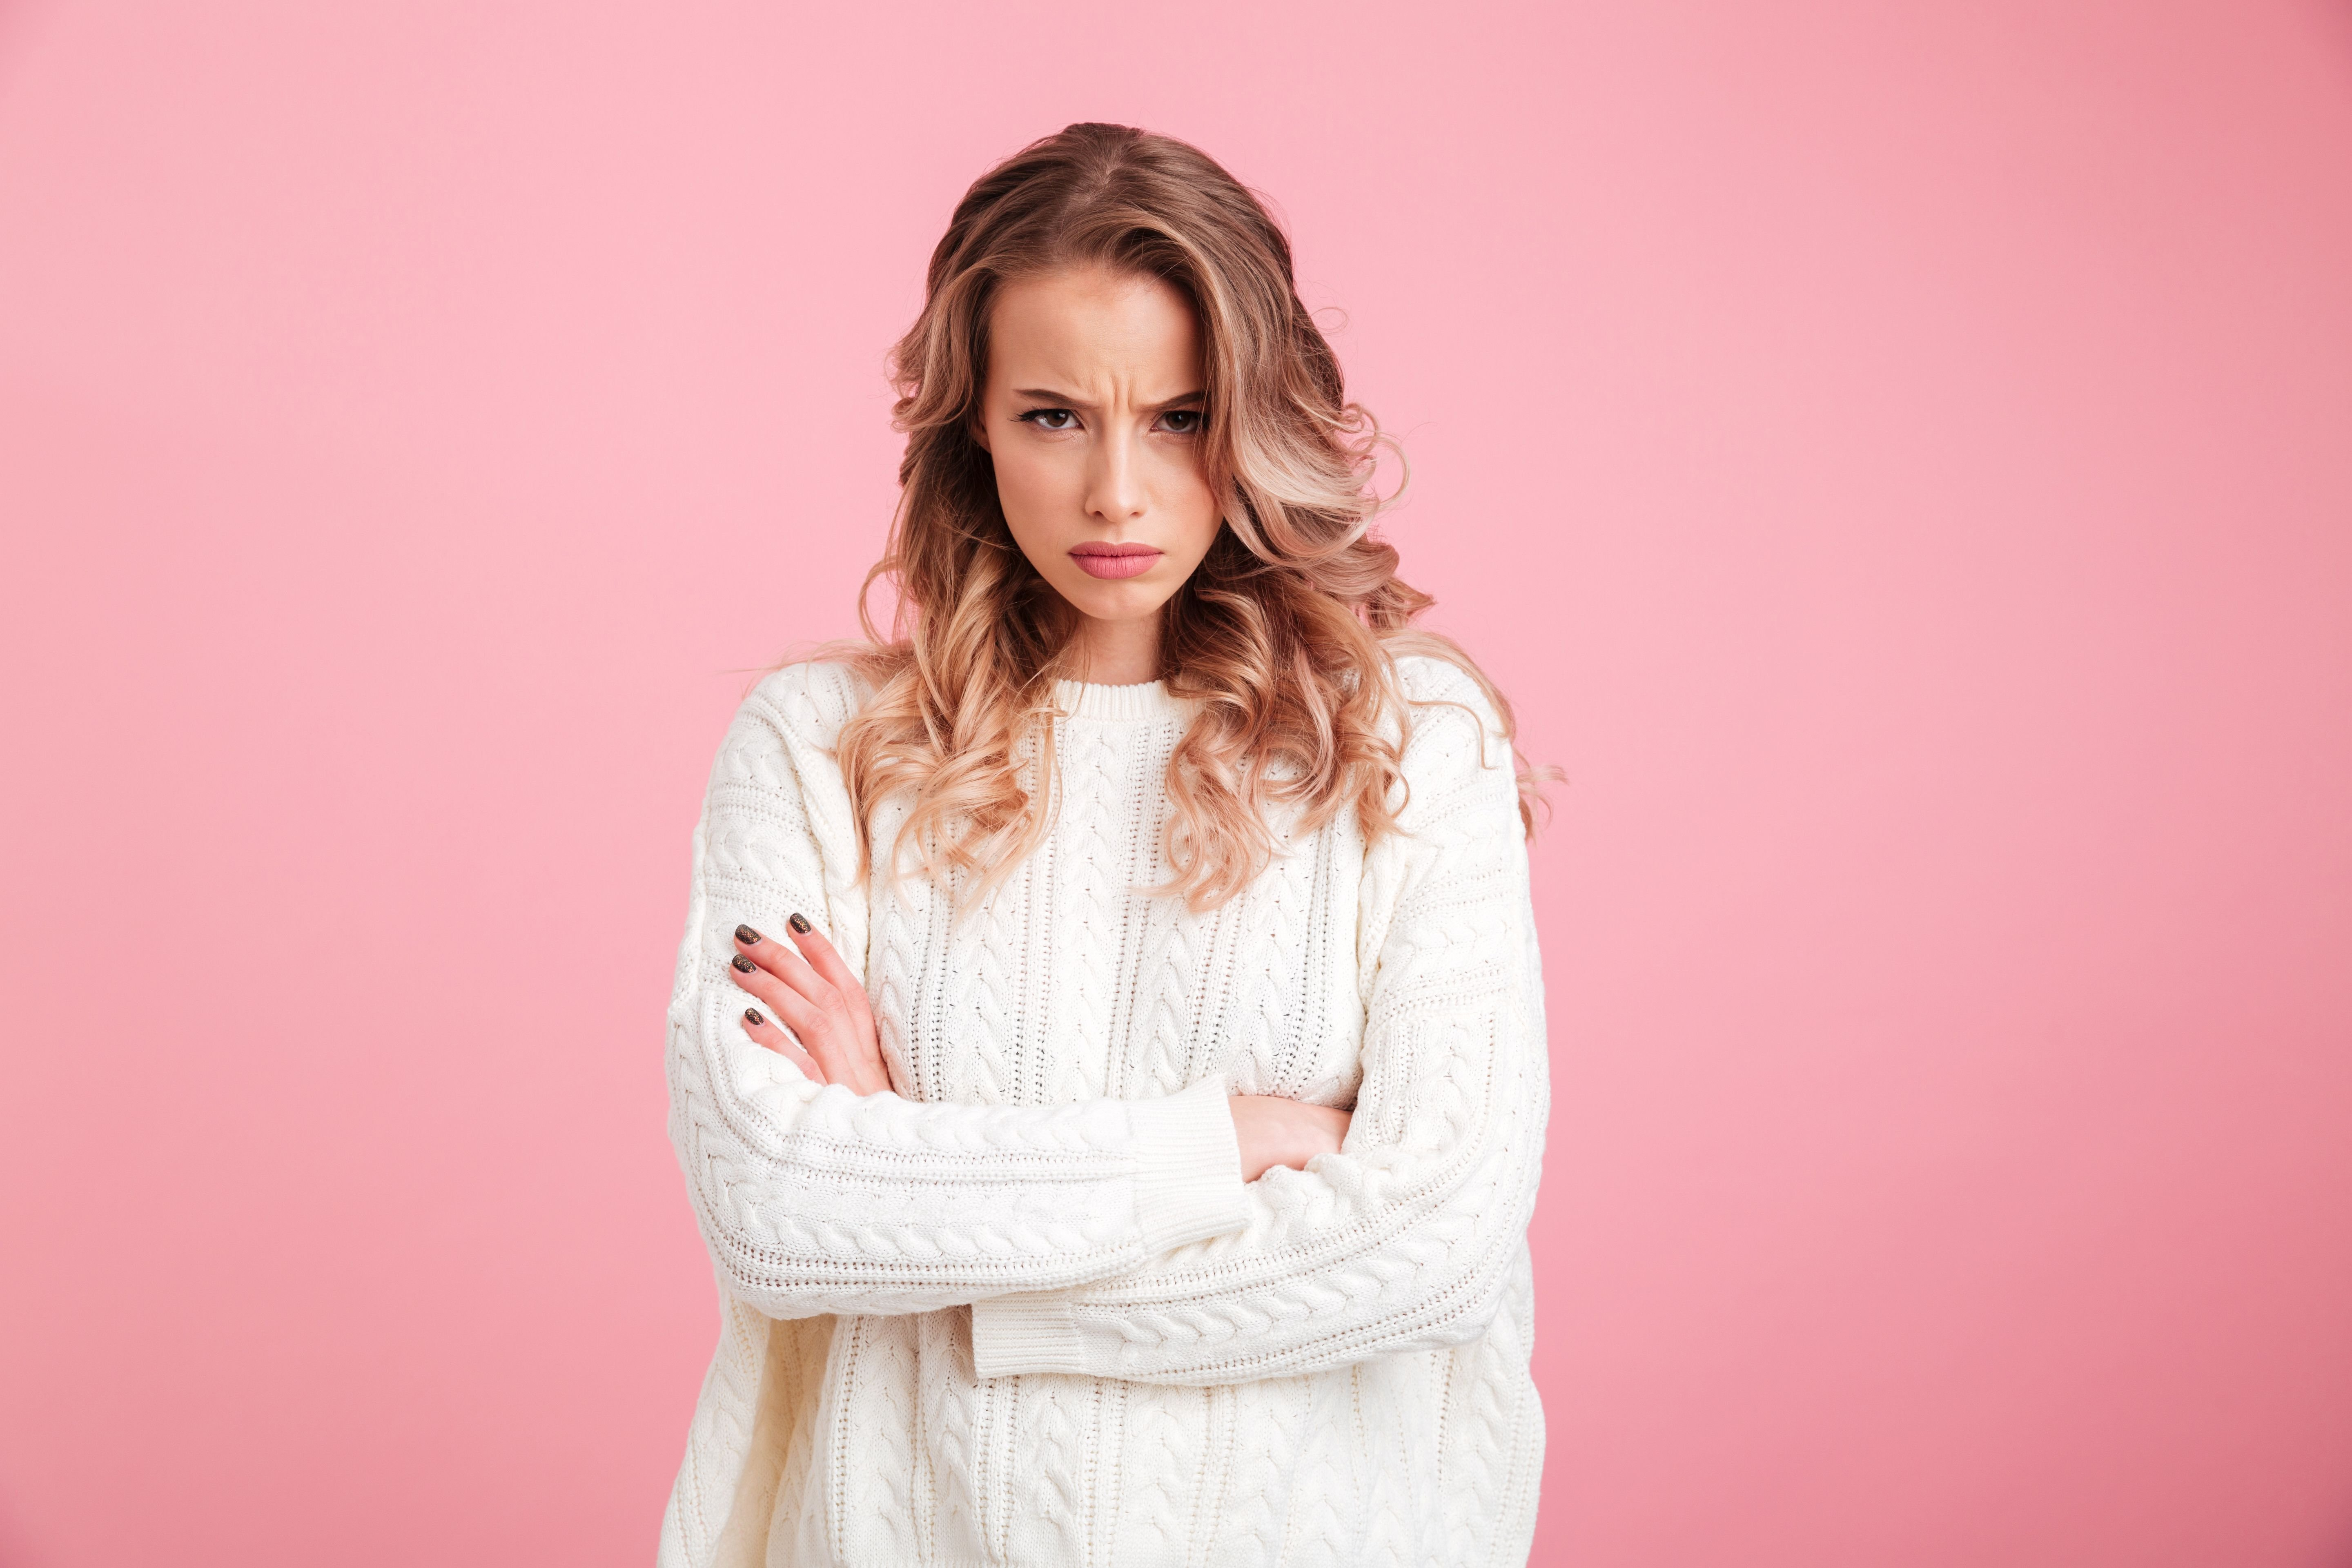 An angry woman crossing her arms.   Source: Shutterstock